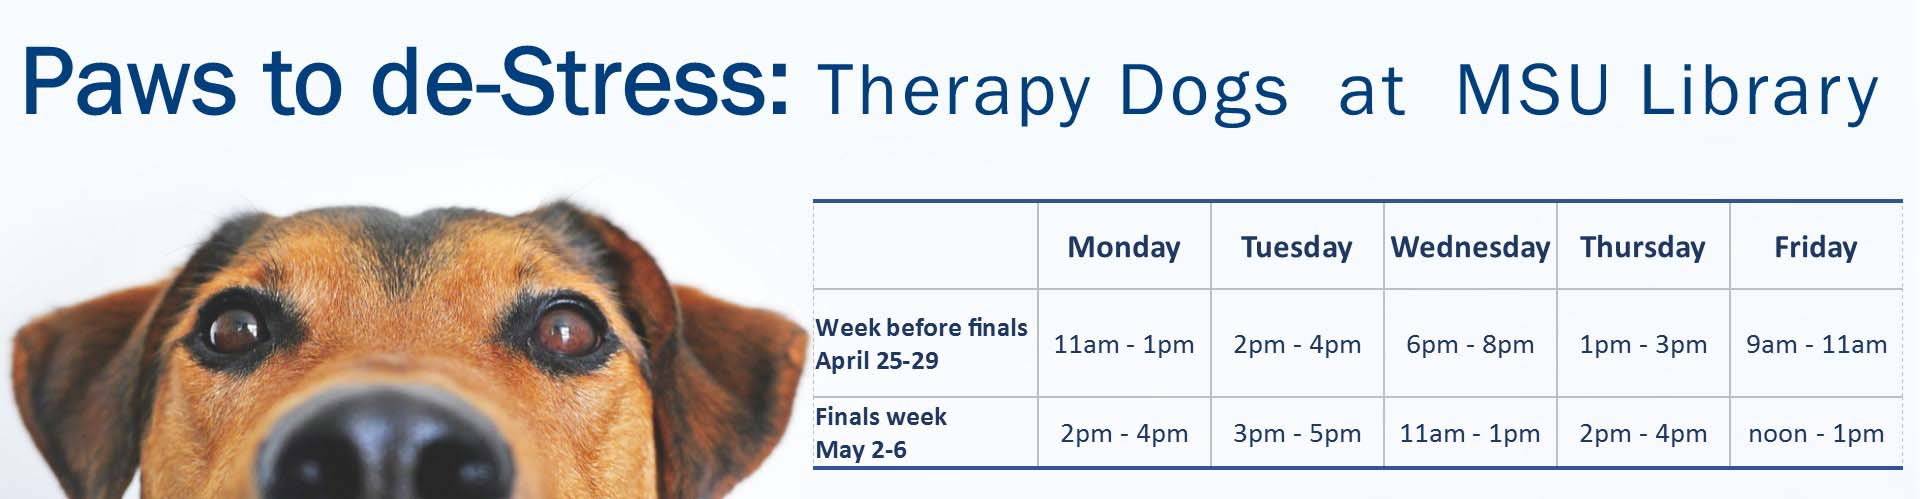 msu library paws to destress information